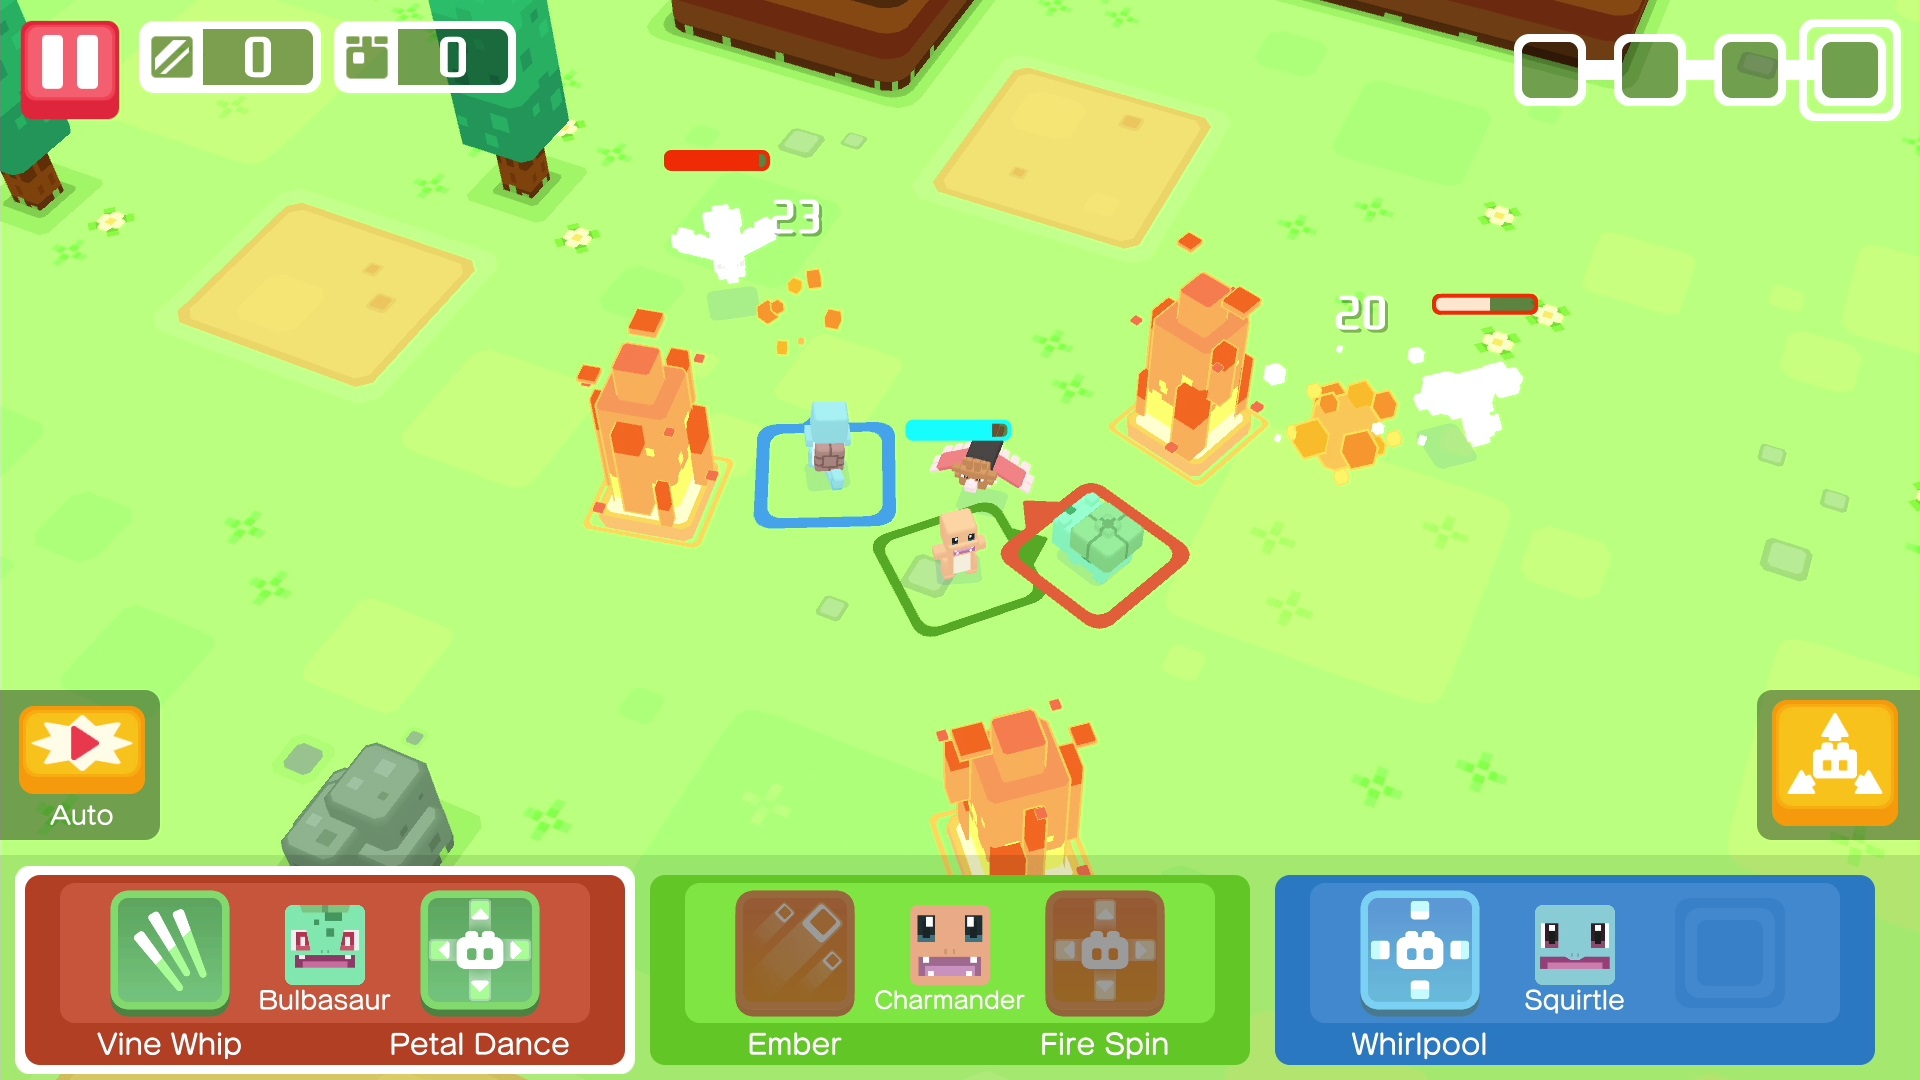 Pokémon Quest is now free on Nintendo Switch - Polygon